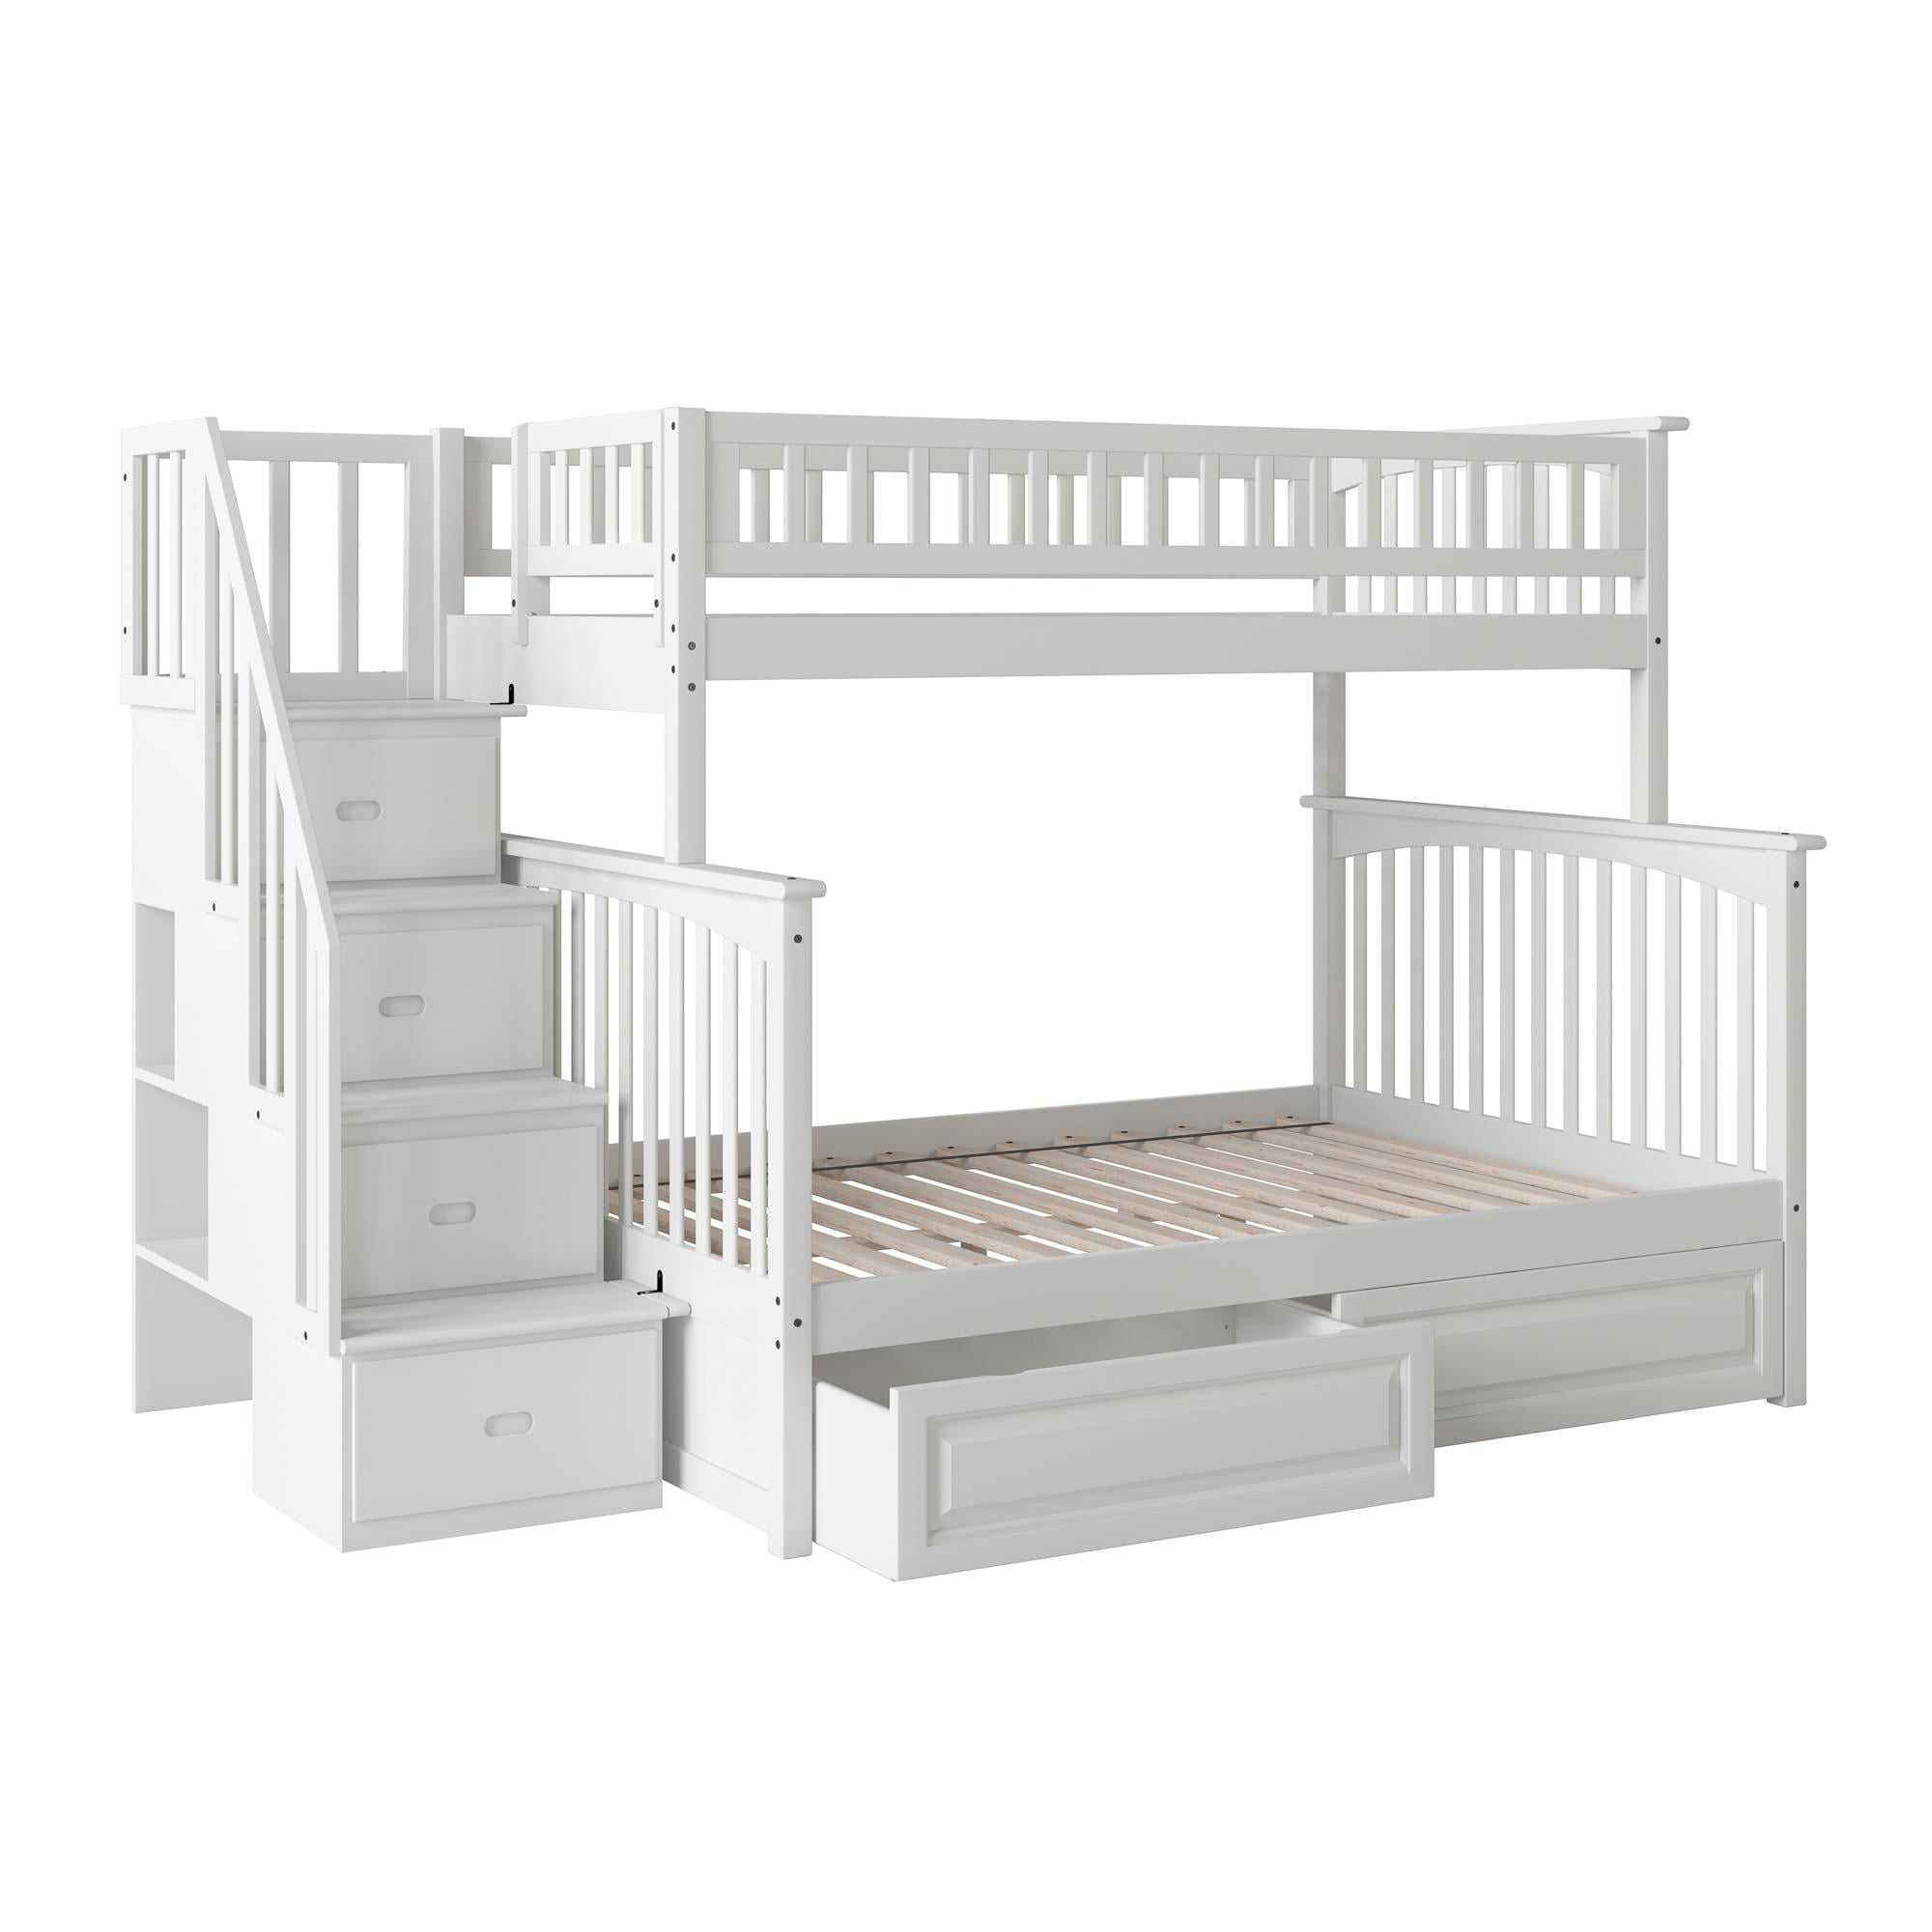 Picture of: Columbia Staircase Bunk Bed Twin Over Full With 2 Raised Panel Bed Drawers In White Walmart Com Walmart Com